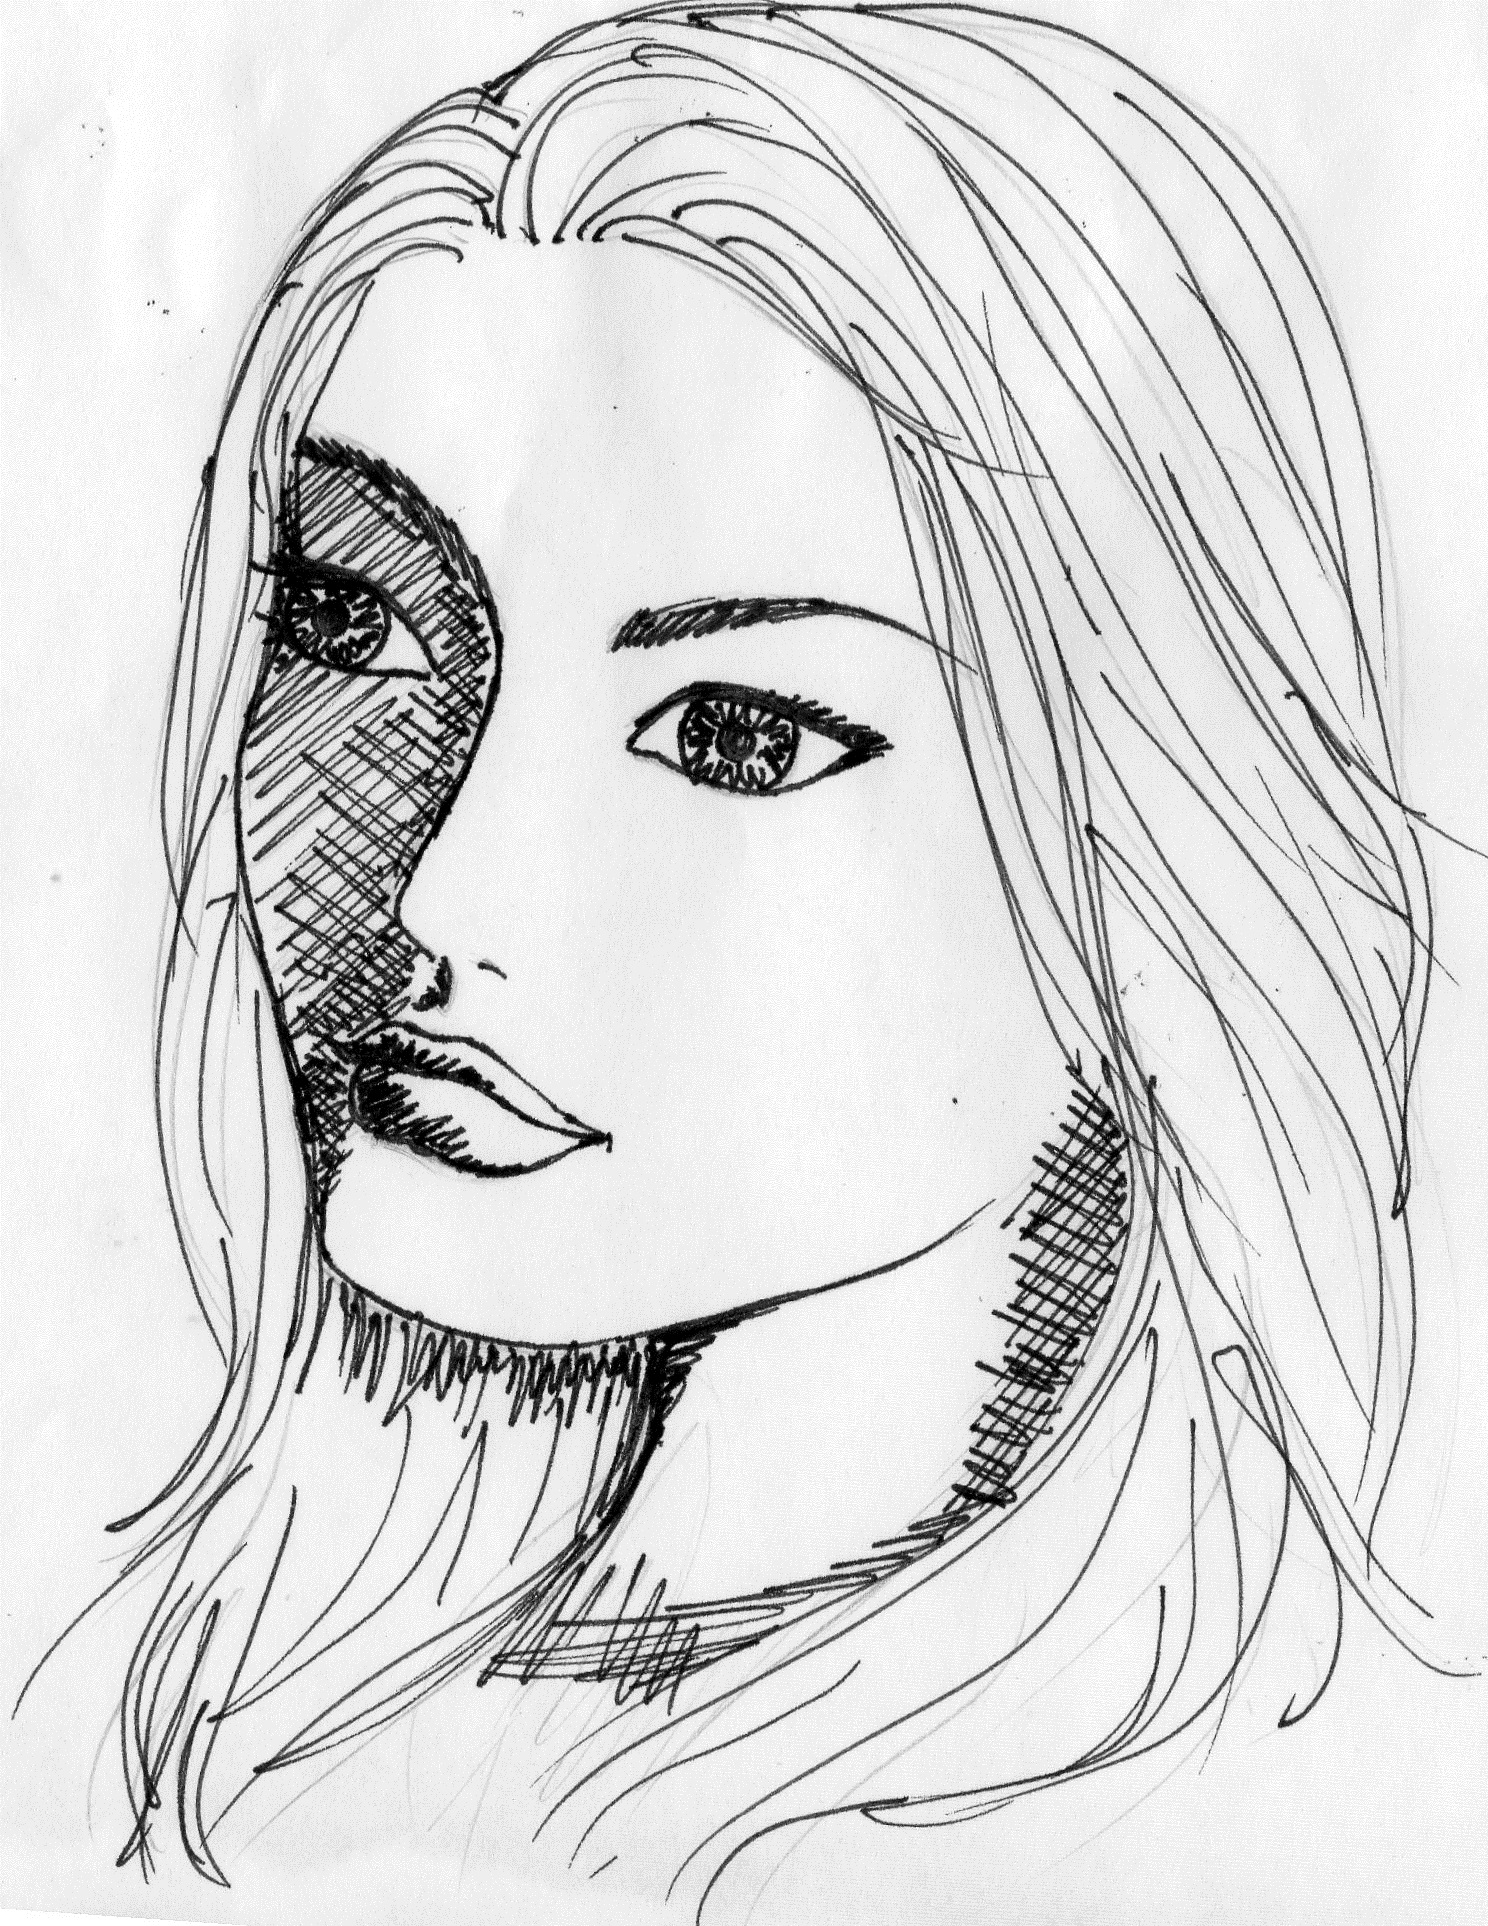 draw a picture of one or more good looking women